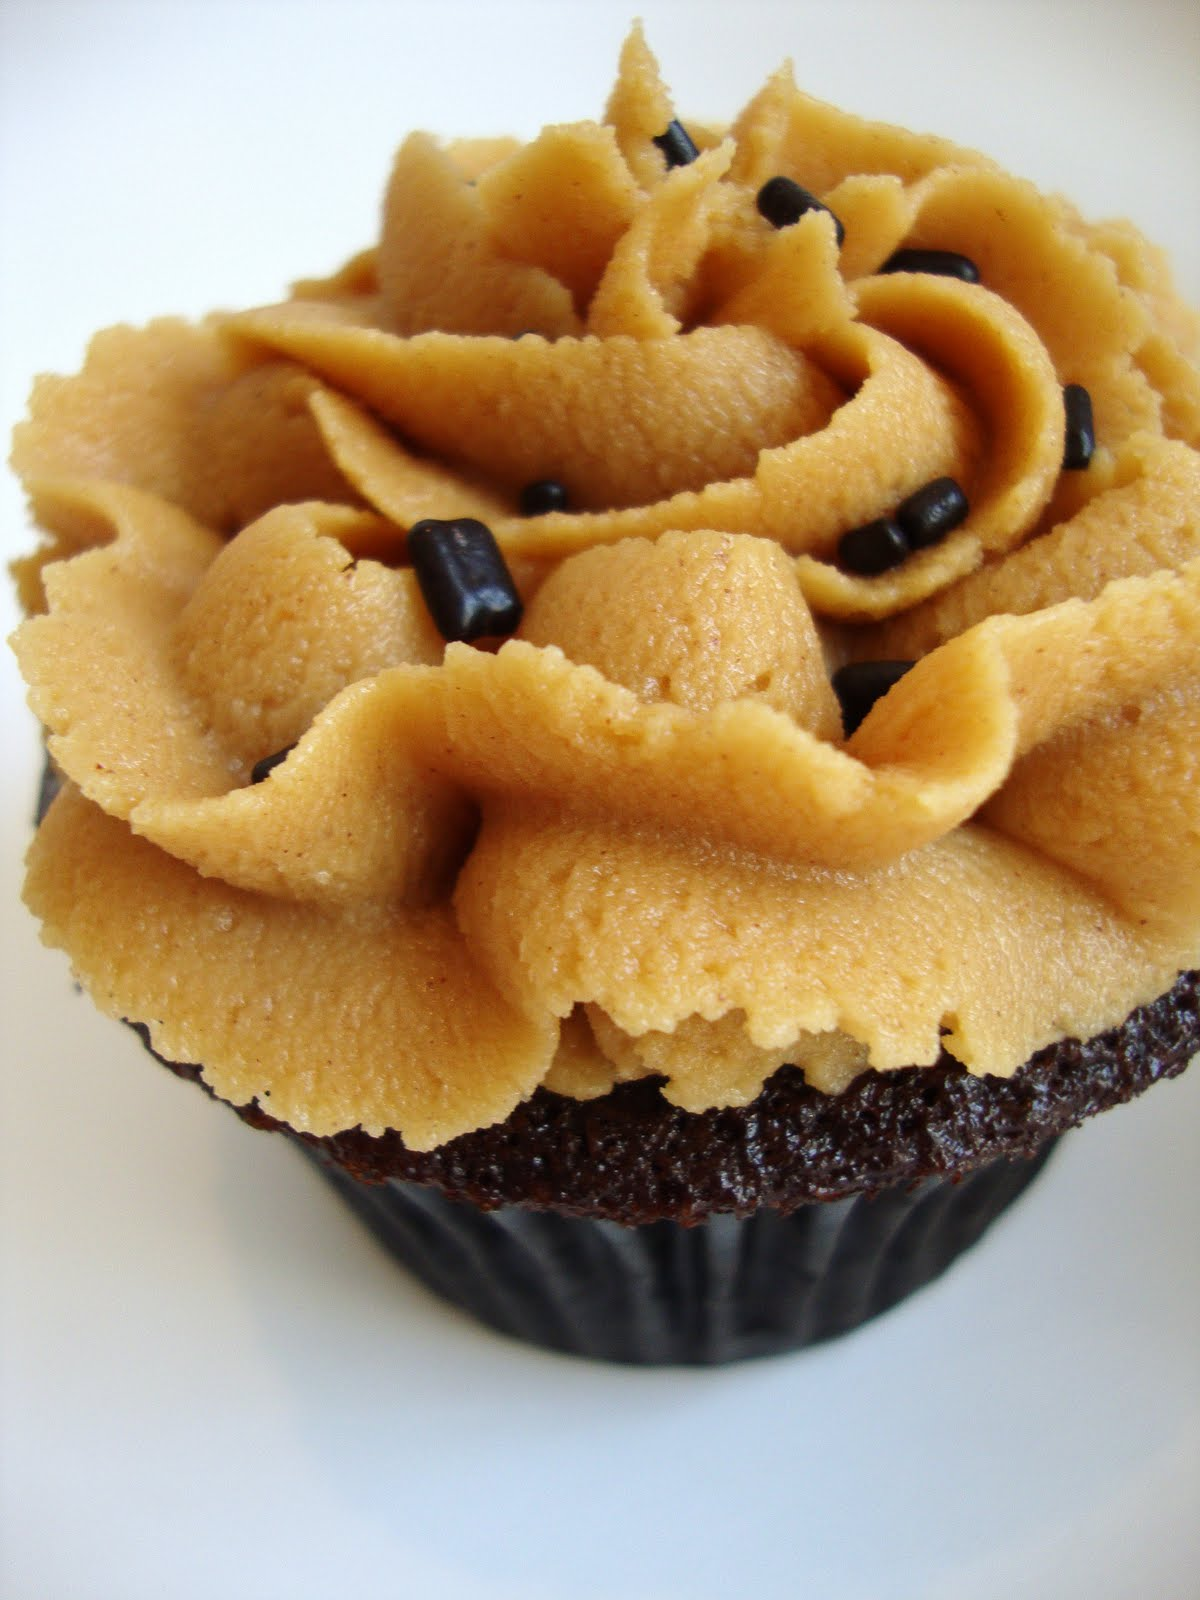 Indecisive Baker: Chocolate Cupcakes with Peanut Butter Frosting